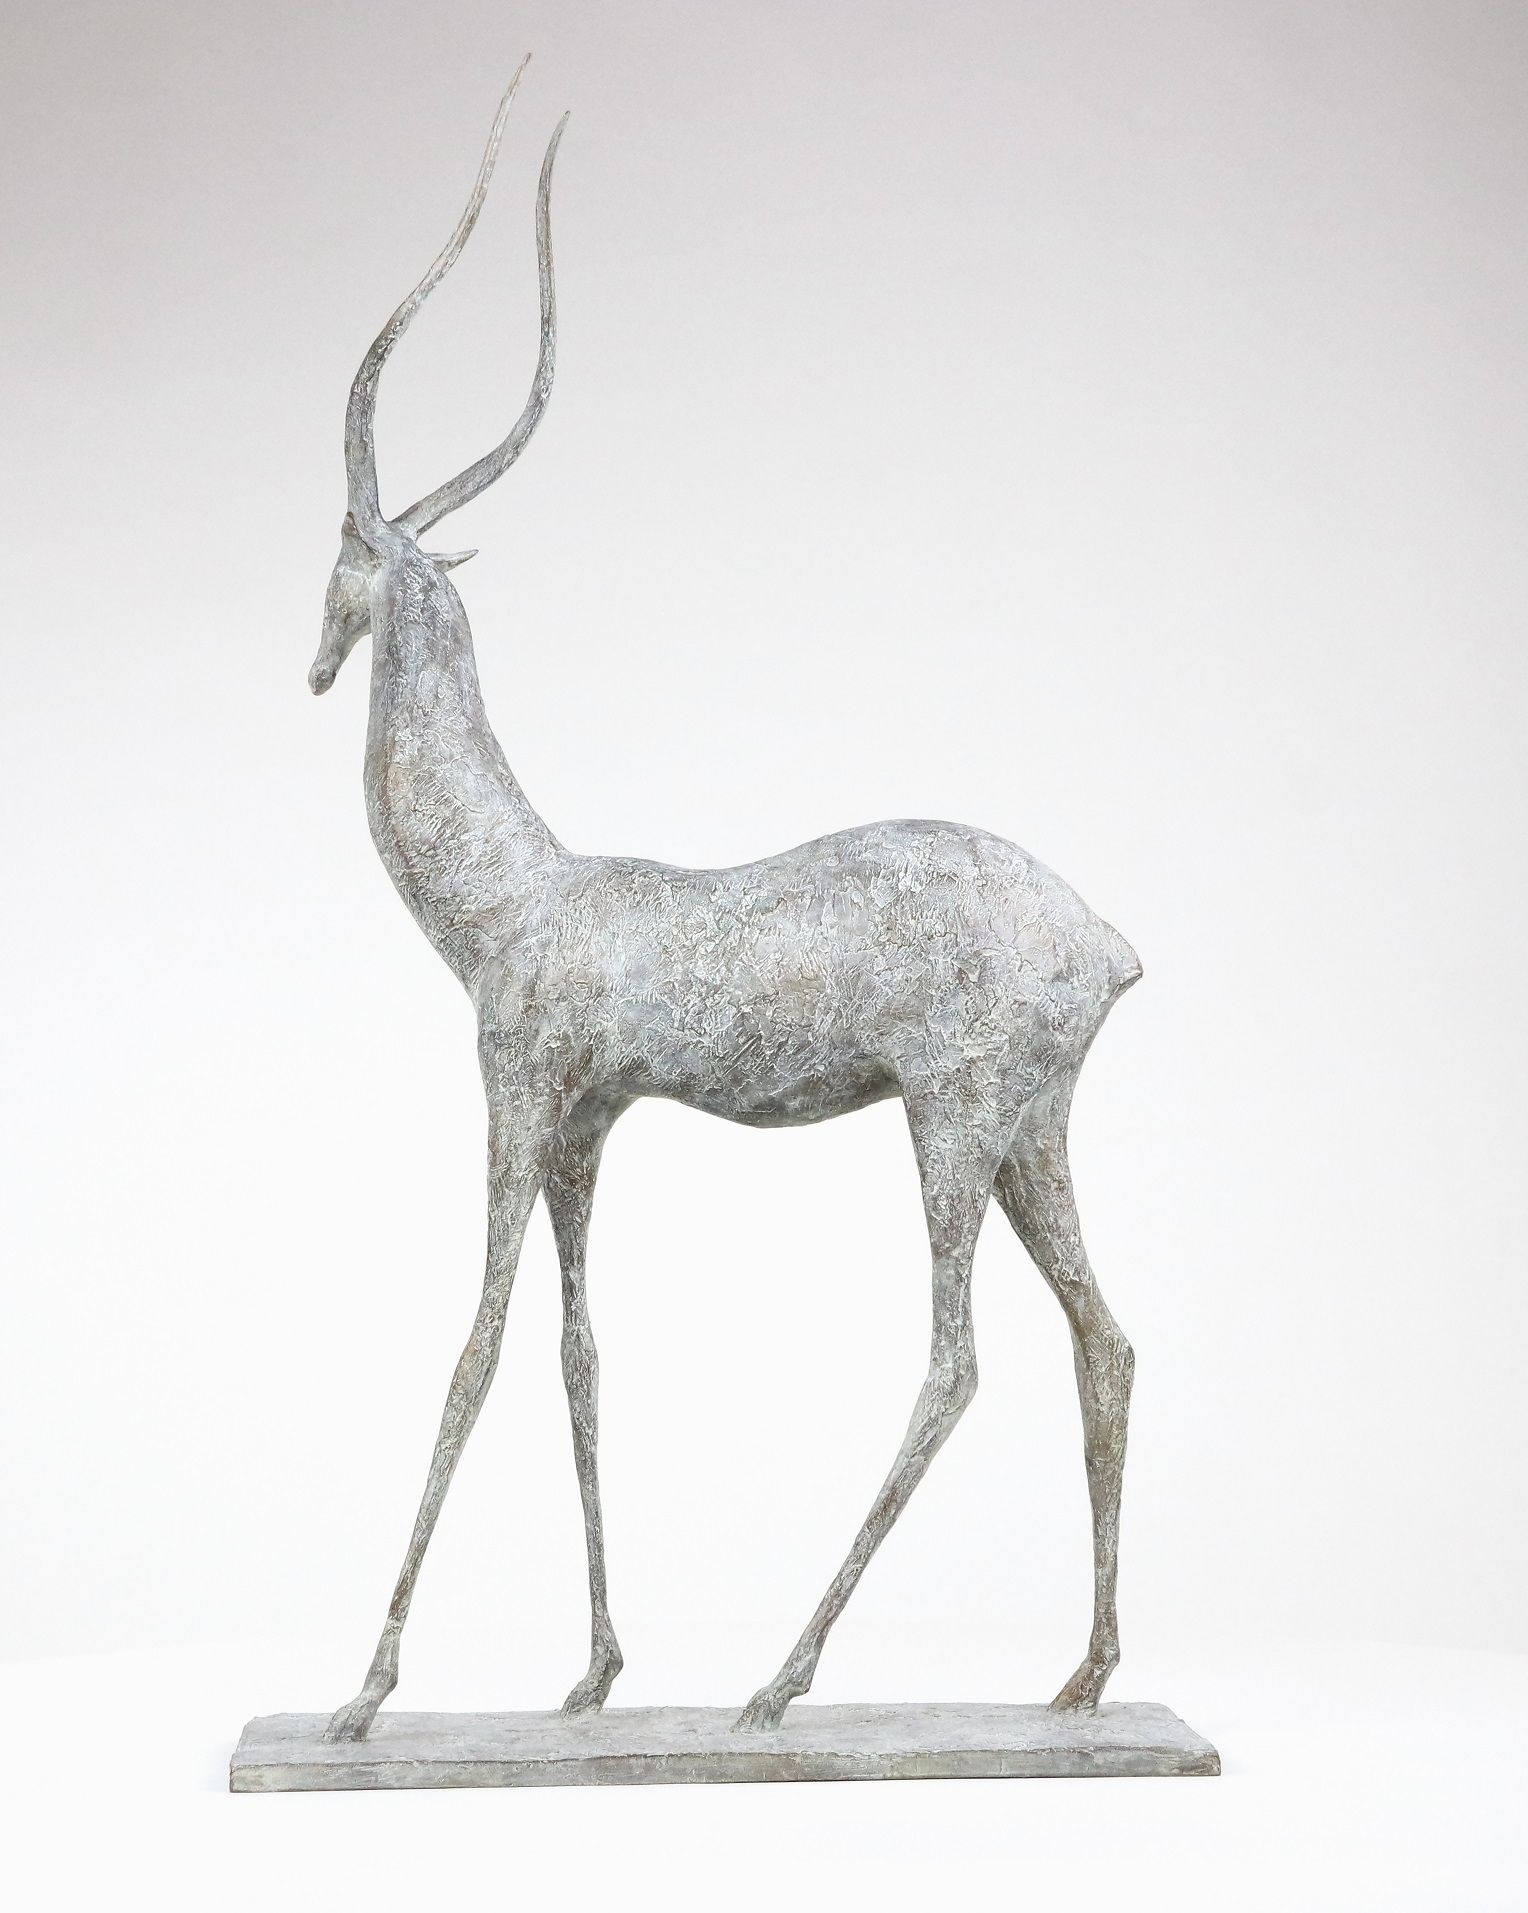 Gazelle I, Pierre Yermia,Sculpture, detail 1